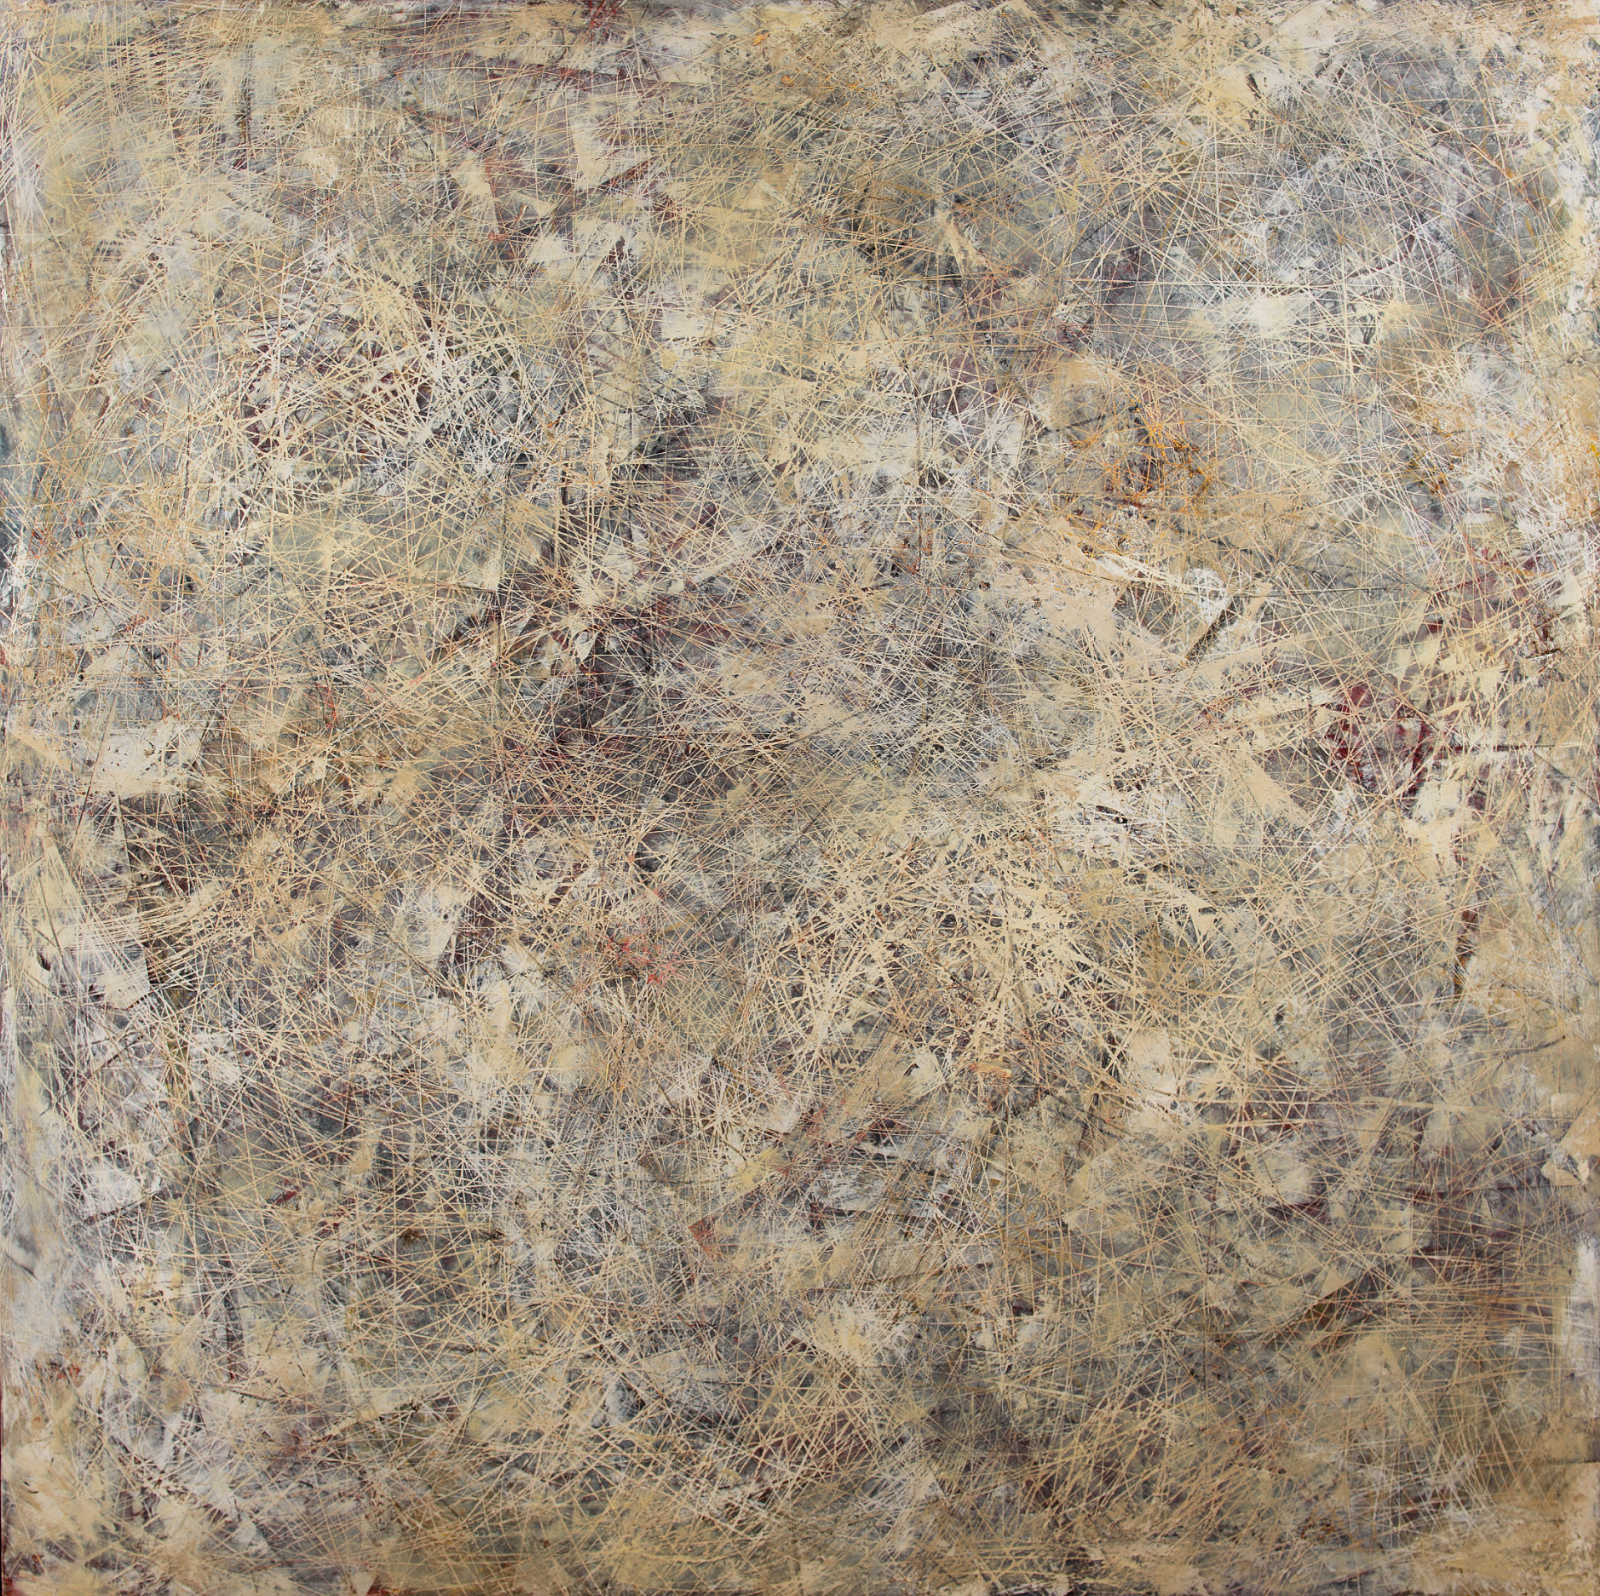 Abstract brown and grey strokes on wooden panel by Matthew Goddard-Jones